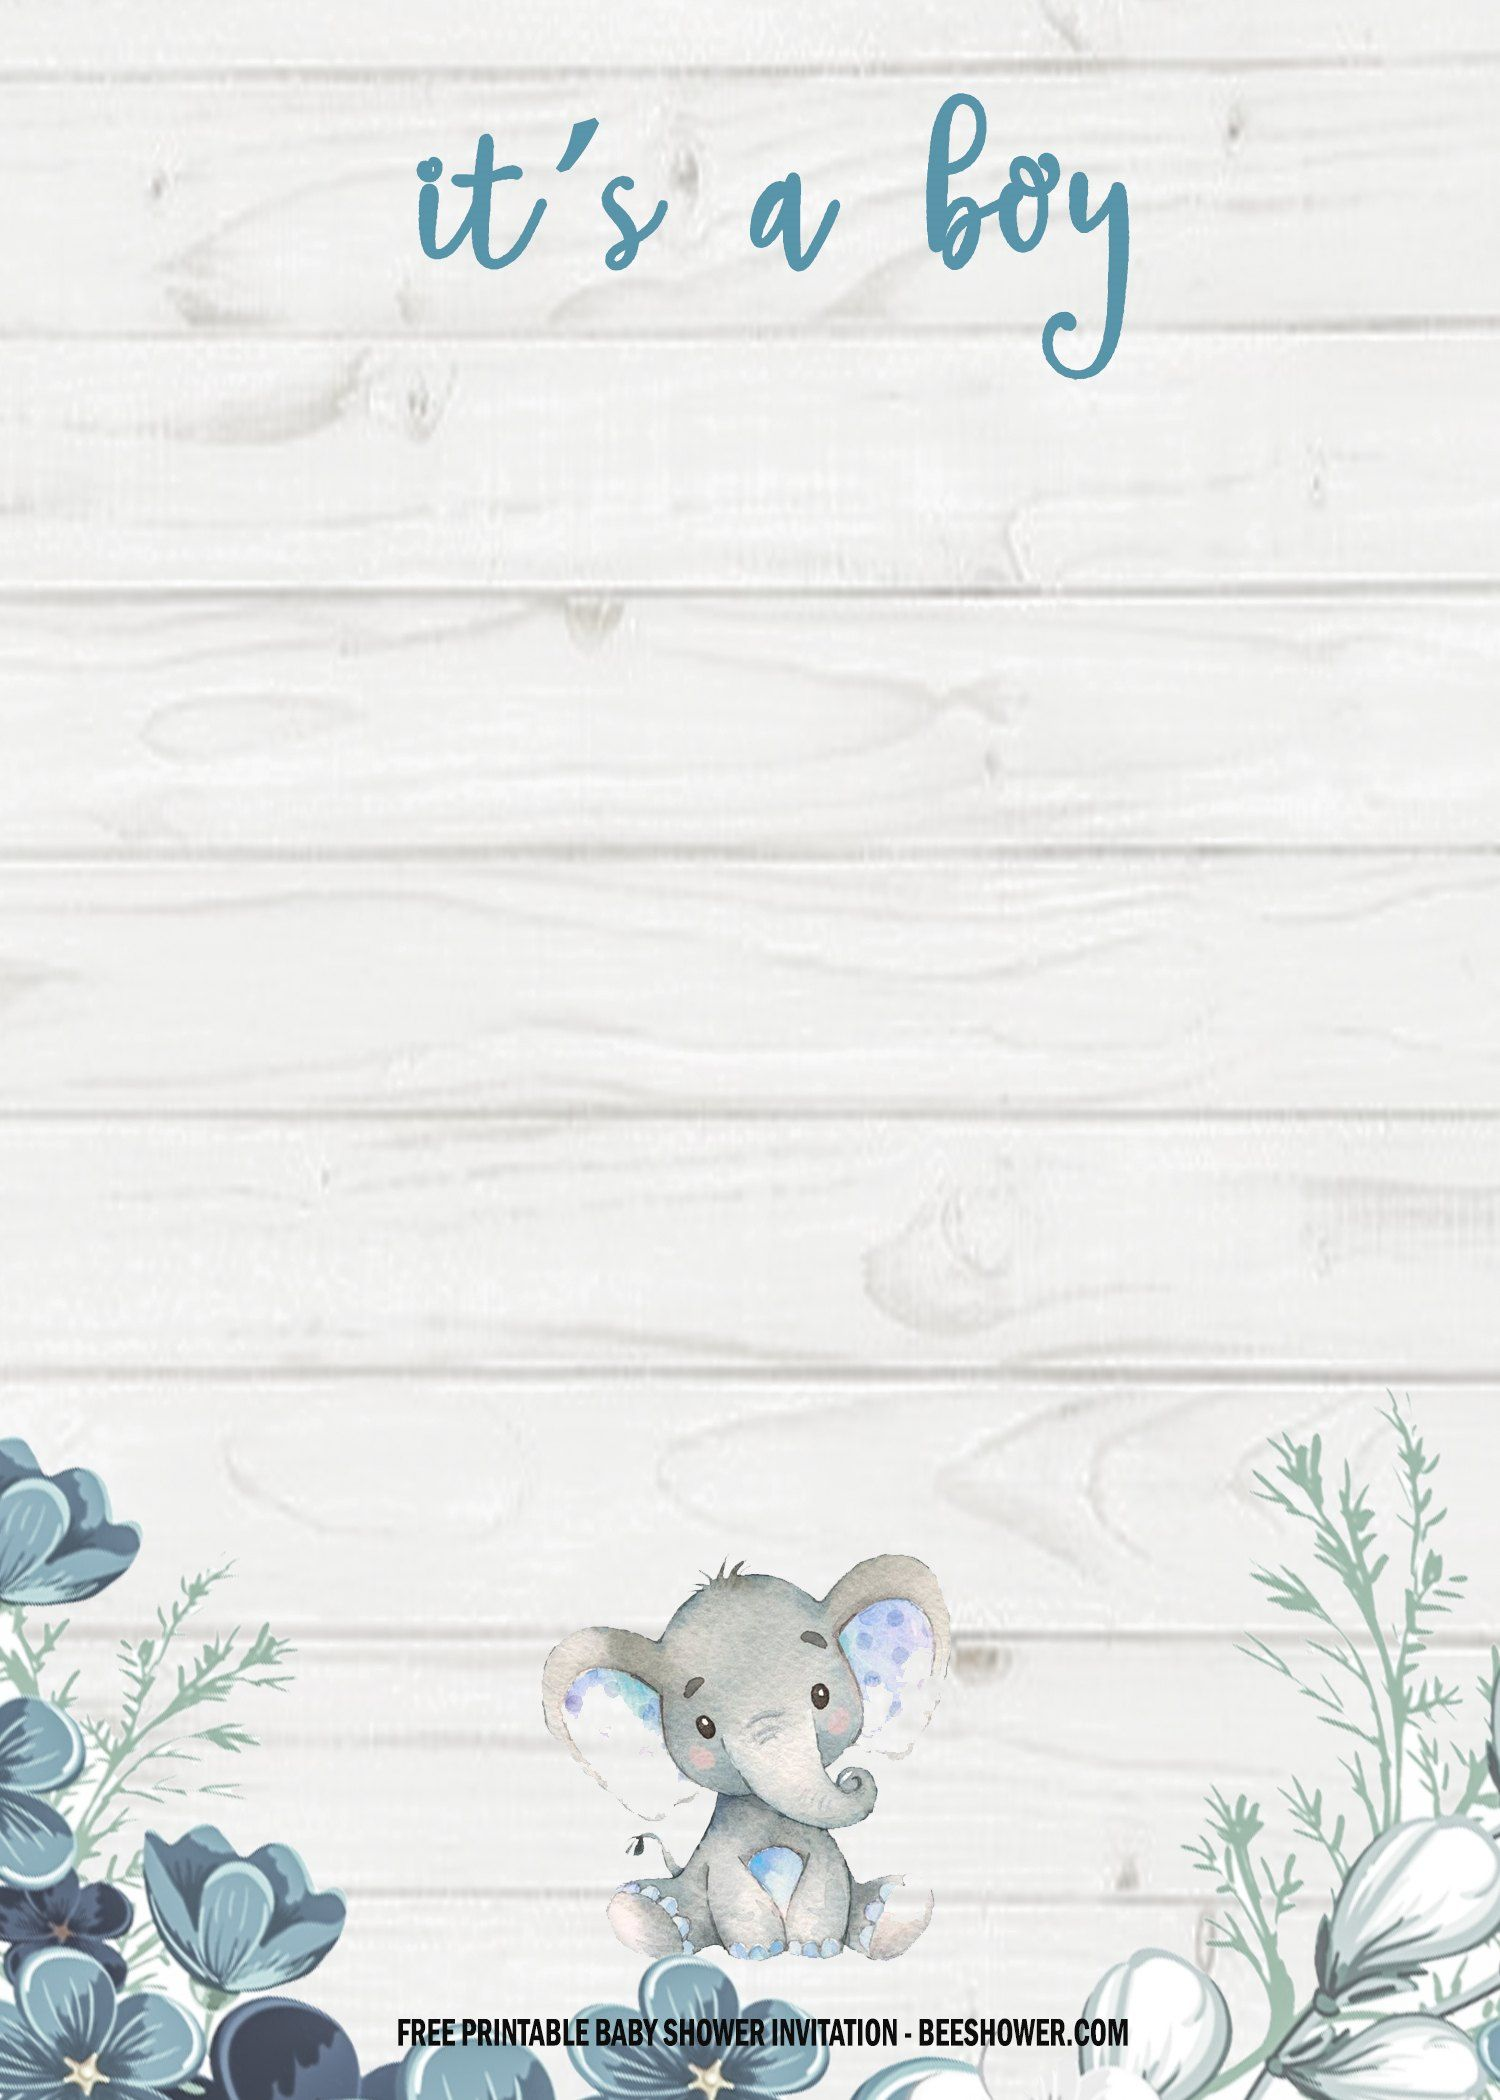 6 Free Blue Elephant Themed Birthday And Baby Shower Invitation Templates Free Baby Shower Invitations Printable Baby Shower Invitations Elephant Baby Shower Invitations